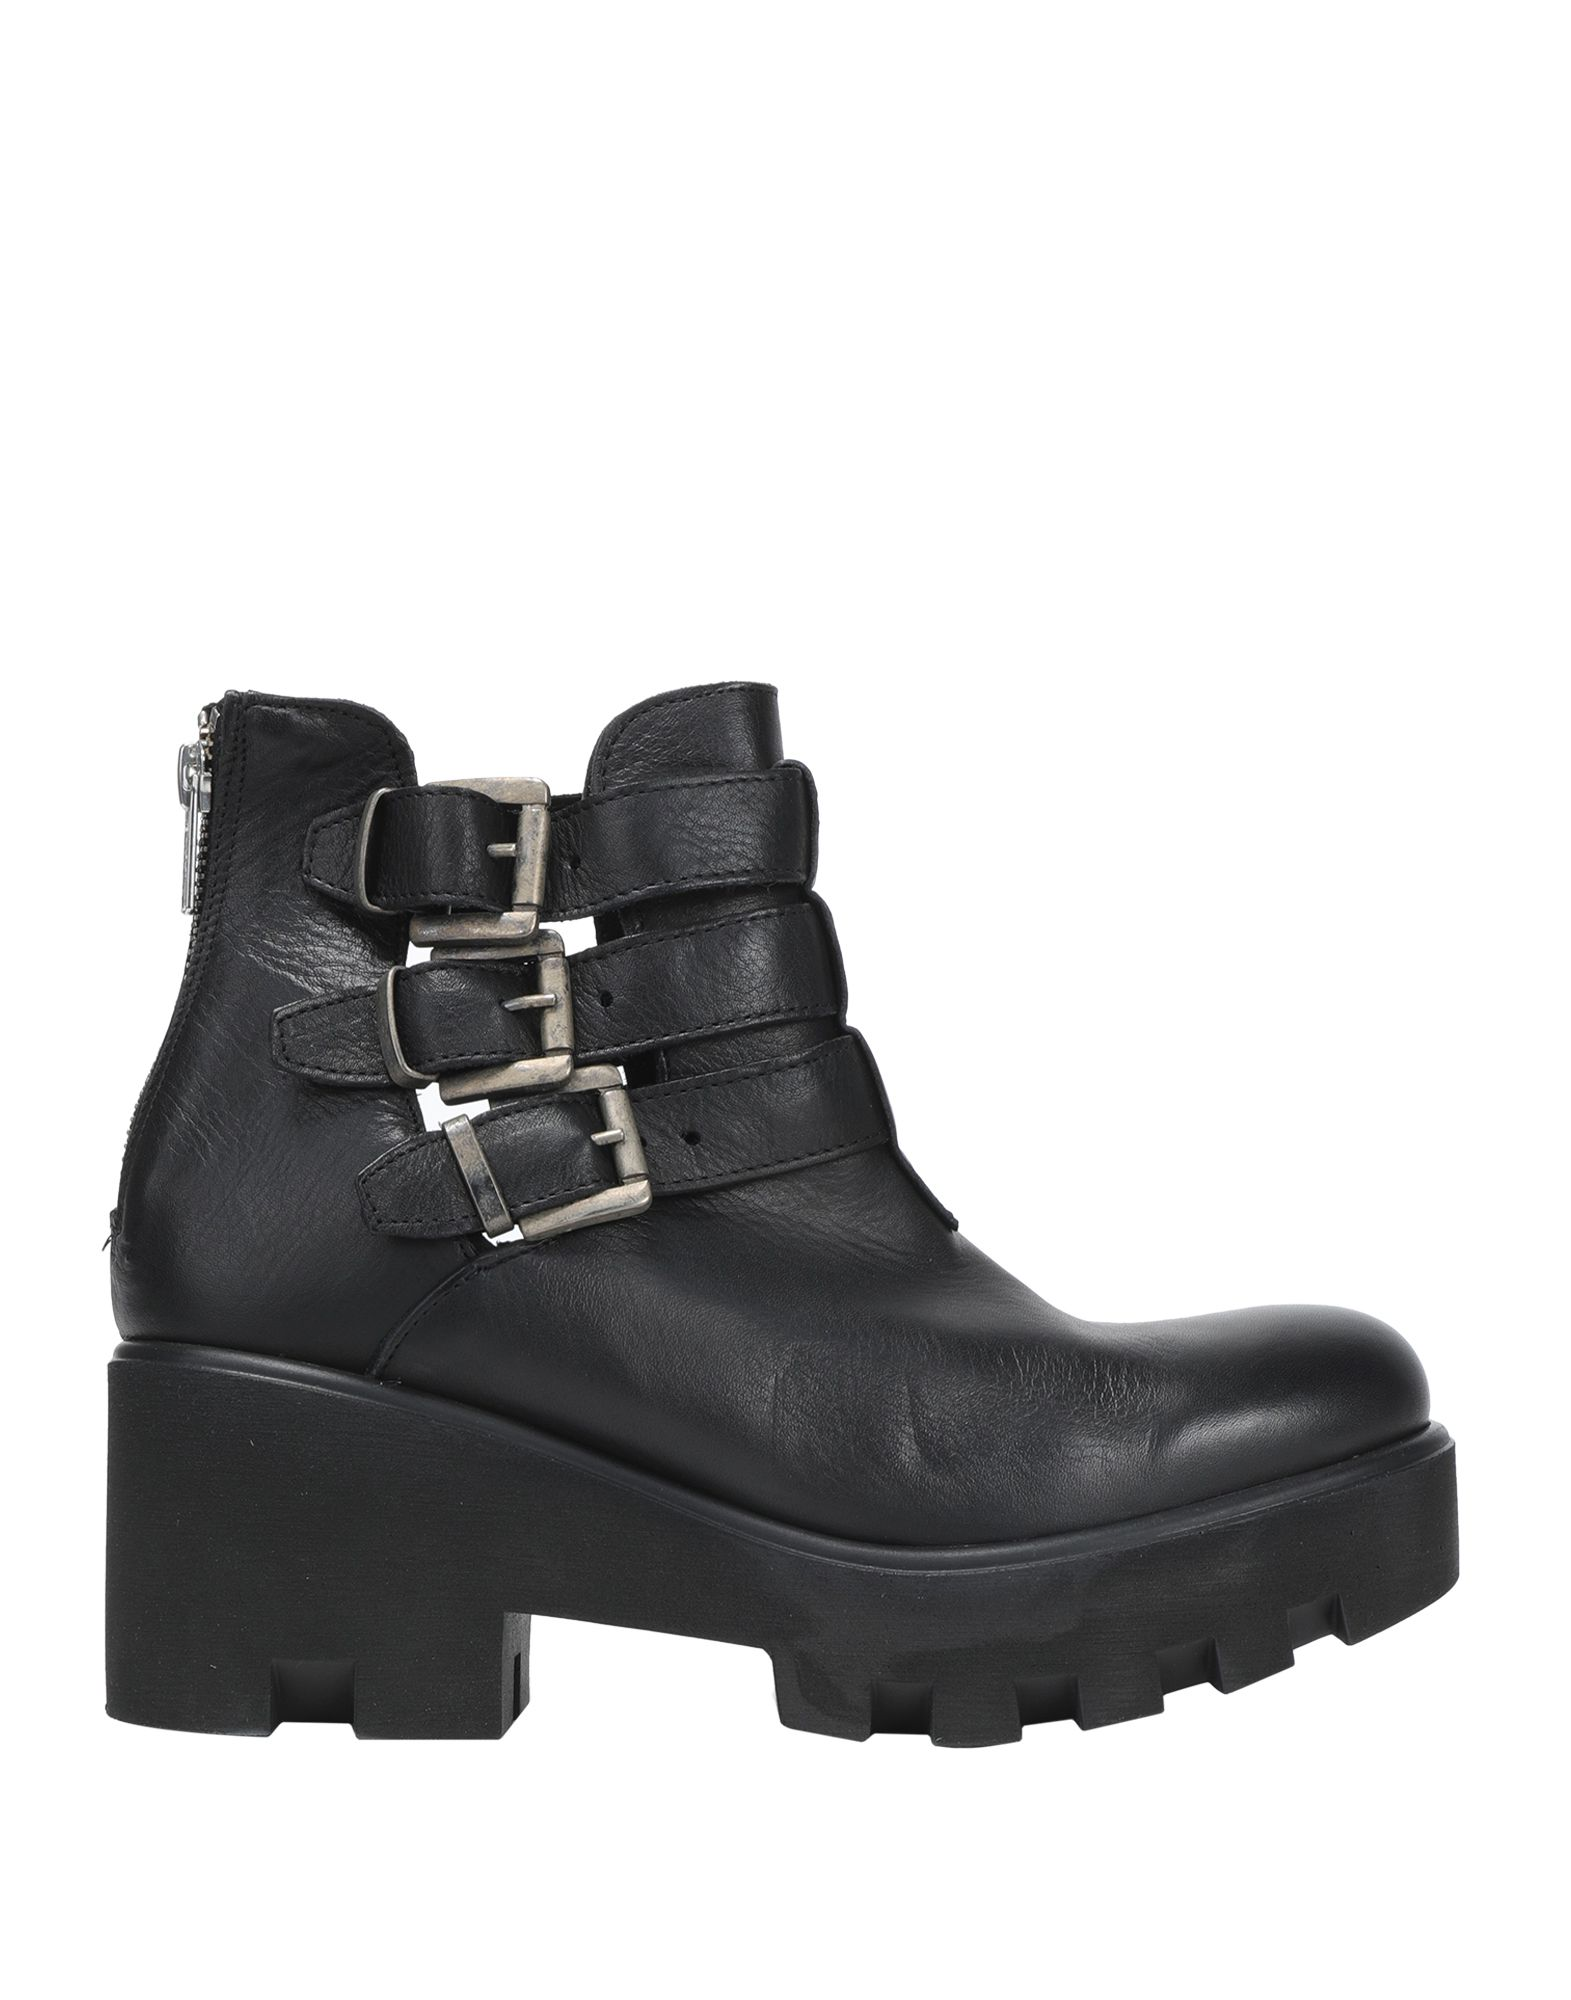 Crown Ankle Boot Boots - Women Crown Ankle Boots Boot online on  Australia - 11511738GP 01107a